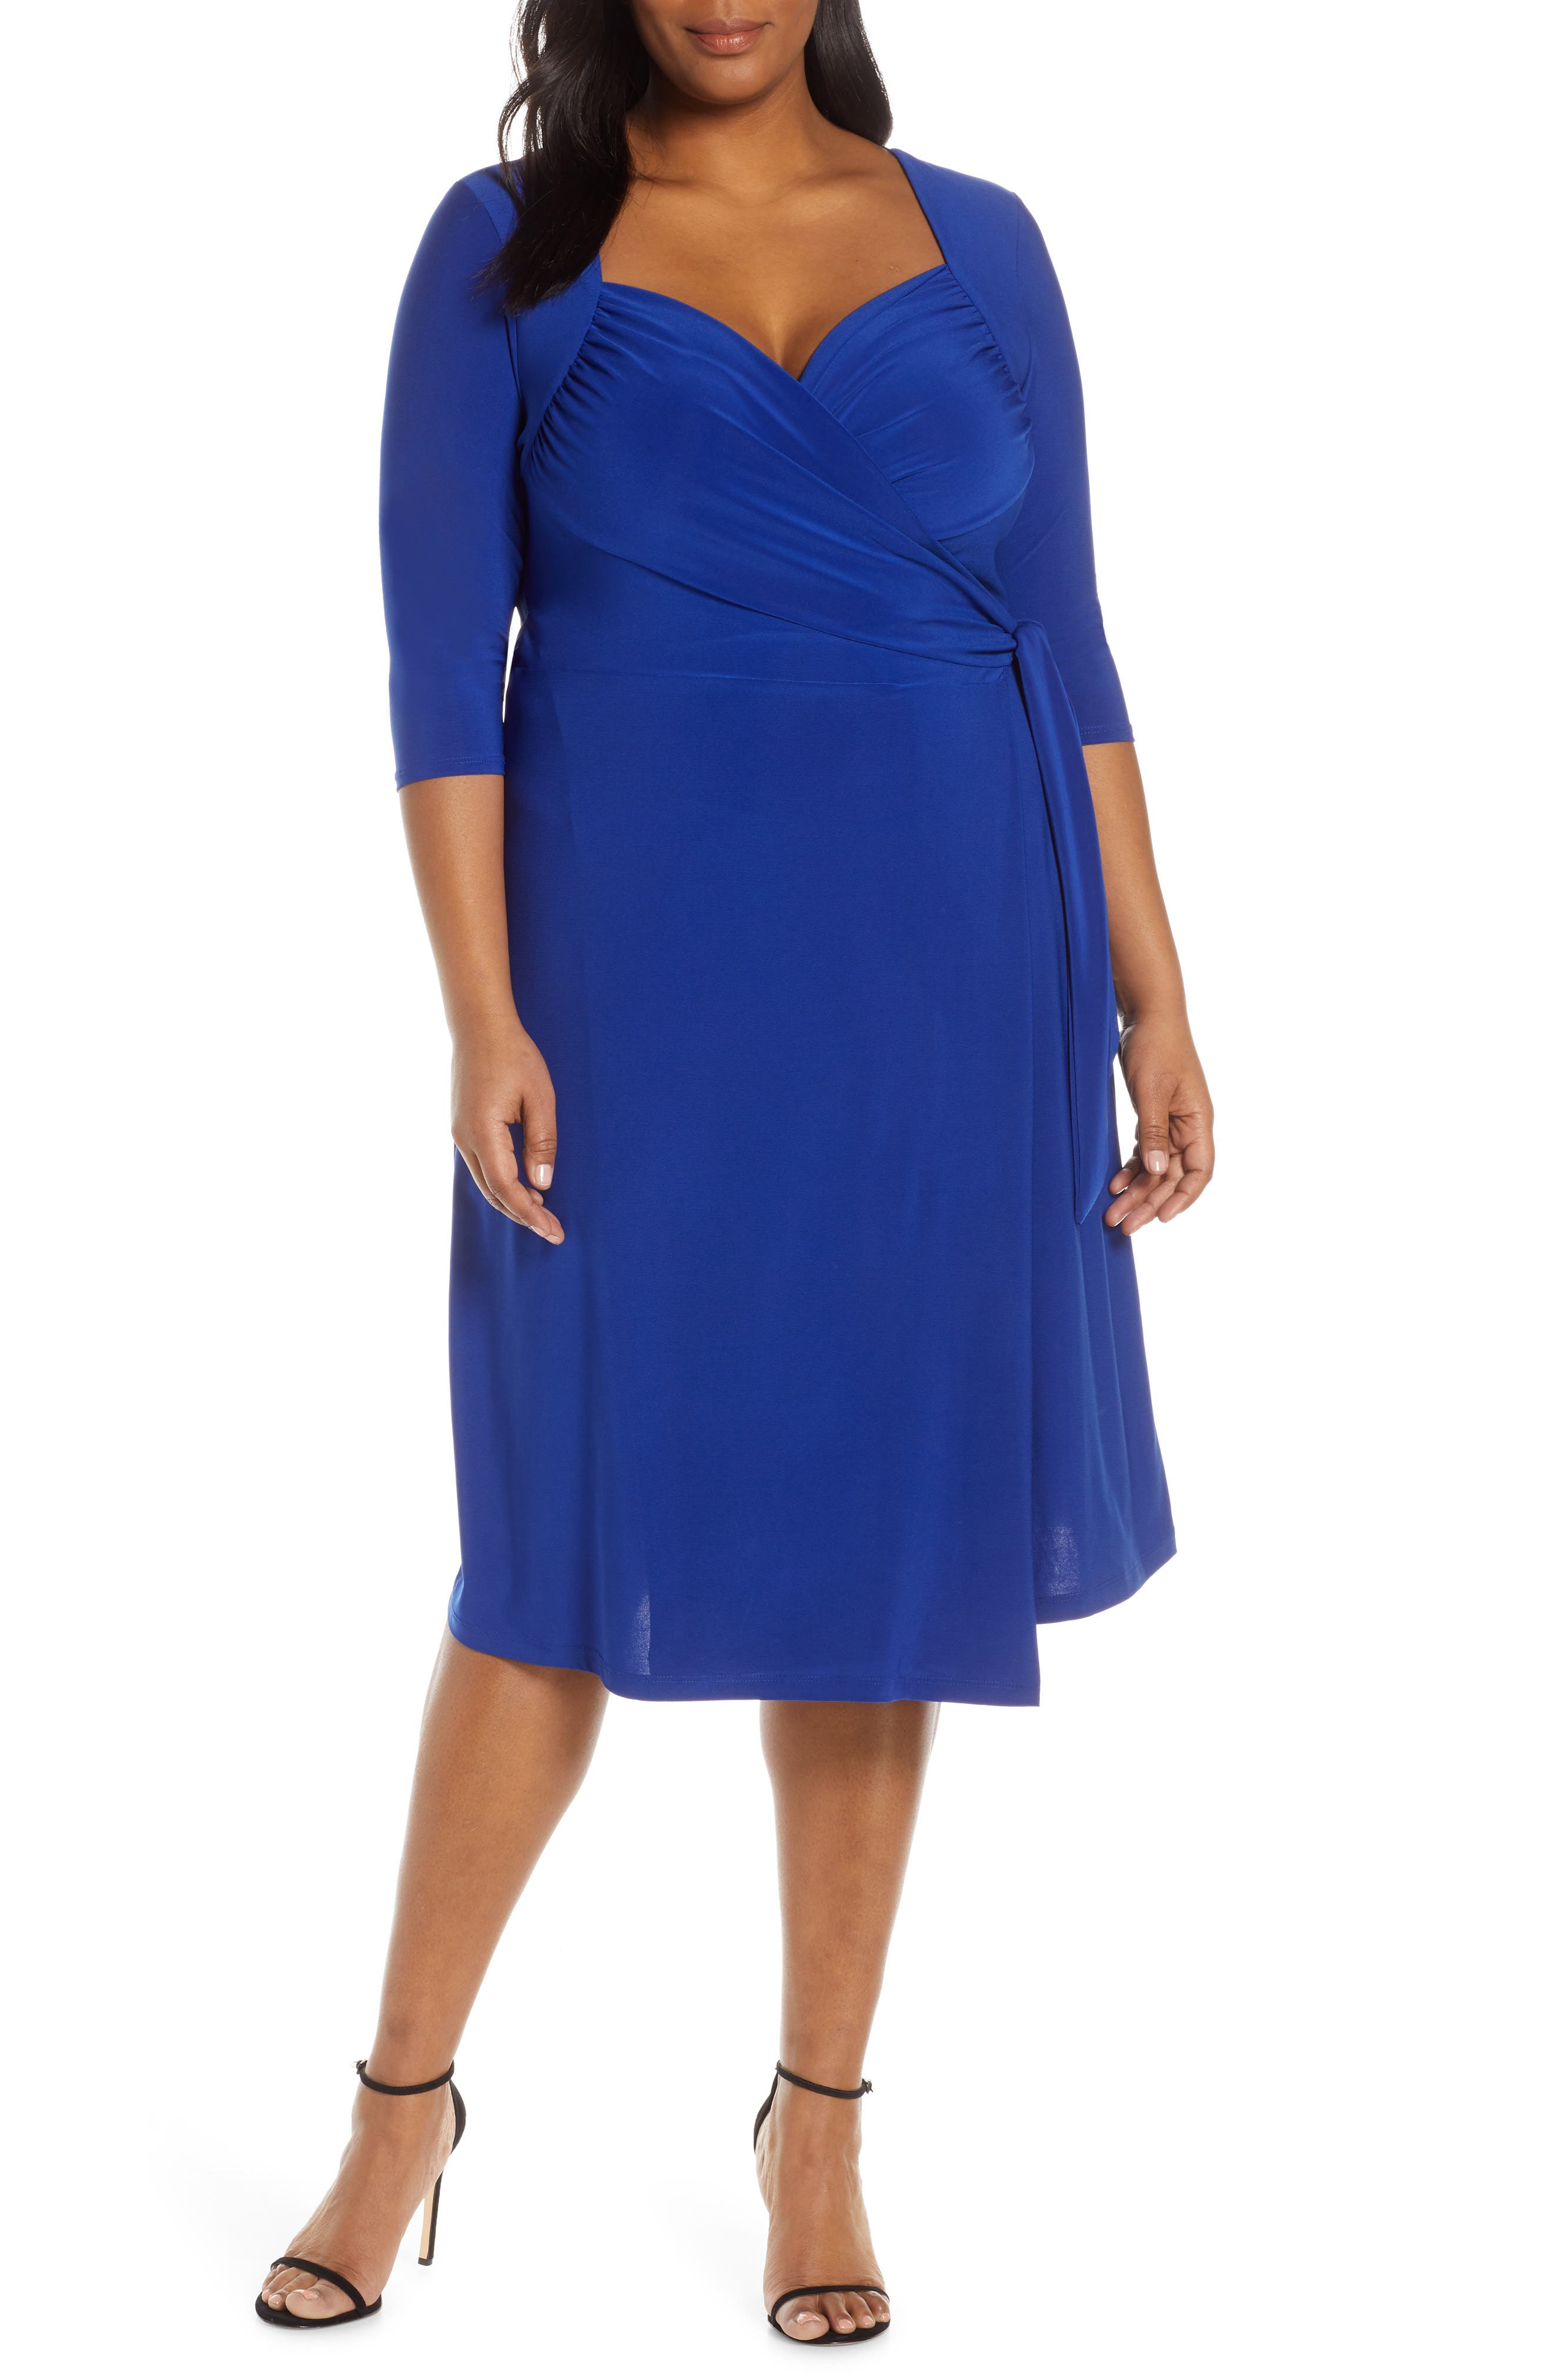 1940s Clothing Plus Size Womens Kiyonna Sweetheart Neck Wrap Dress Size 5X - Blue $88.00 AT vintagedancer.com